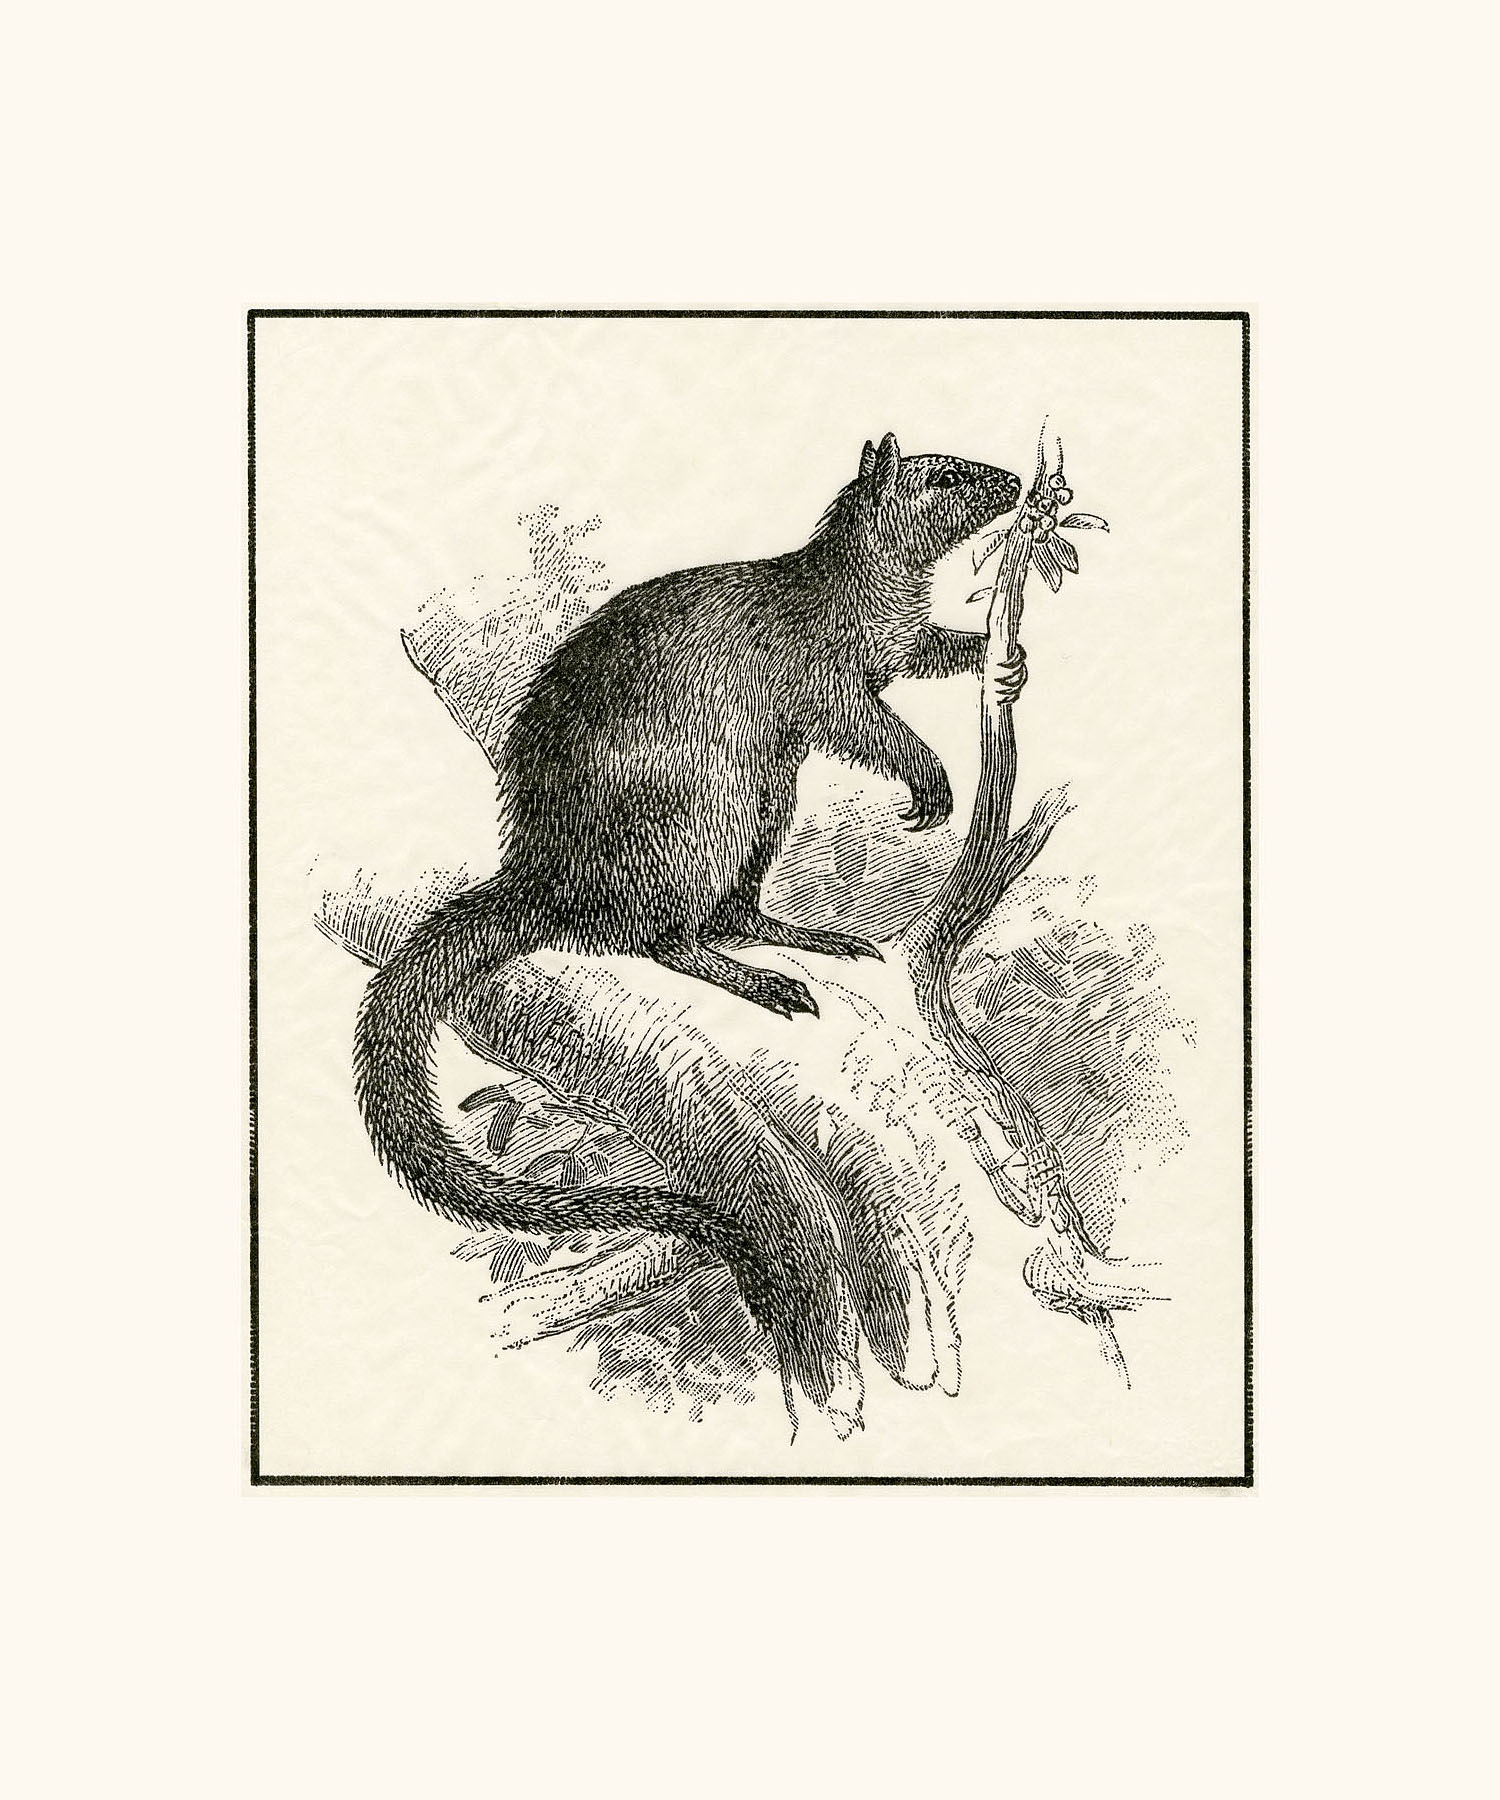 Wondiwoi Tree Kangaroo